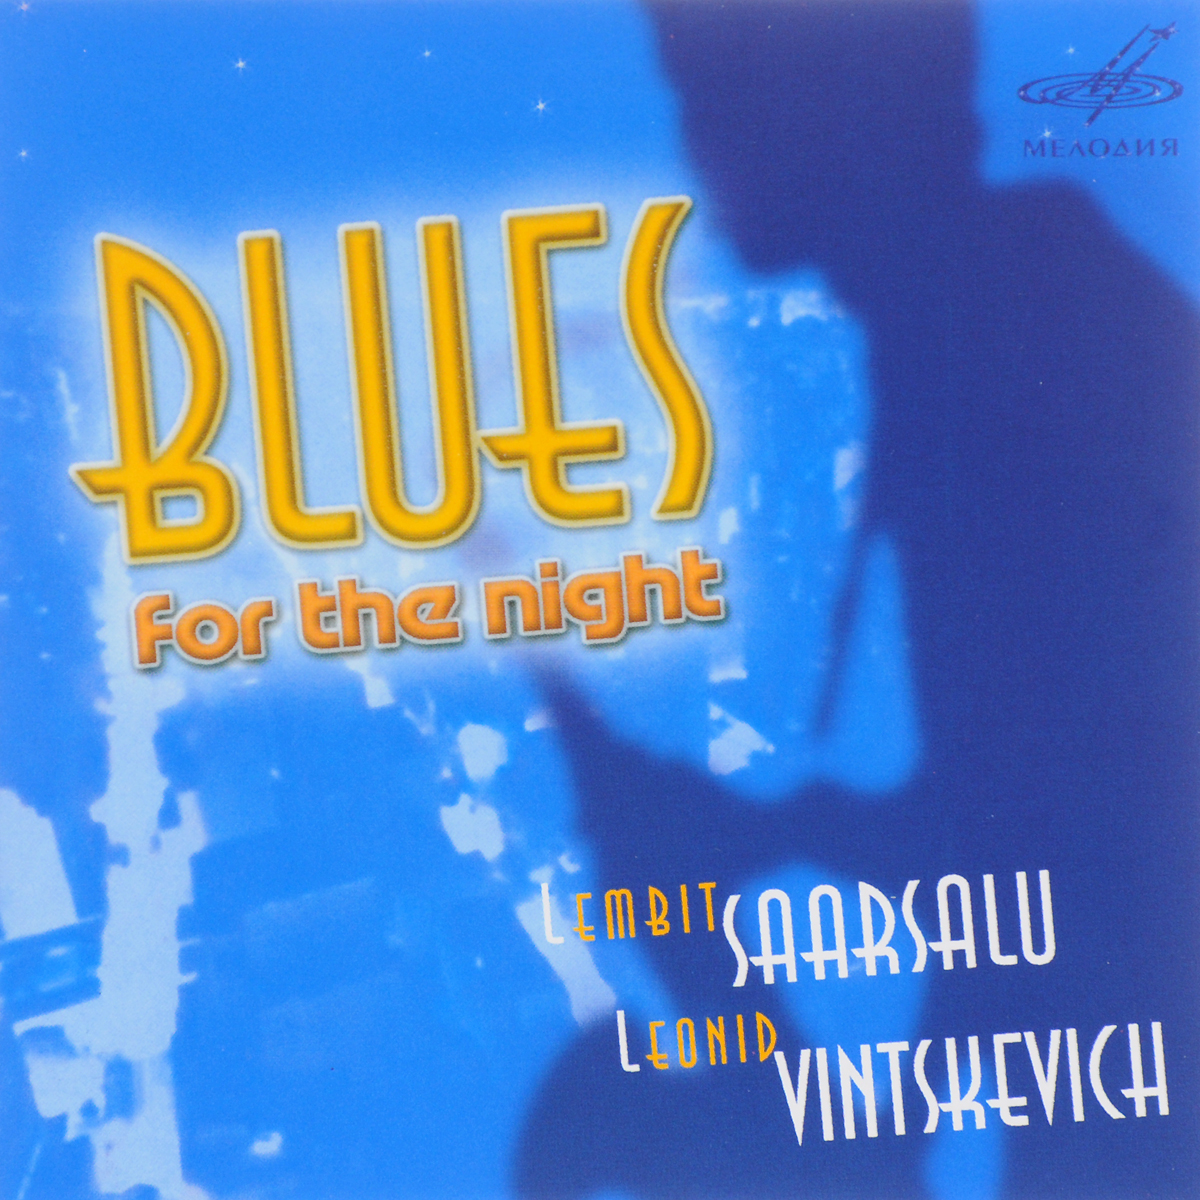 Lembit Saarsalu. Leonid Vintskevich. Blues For The Night